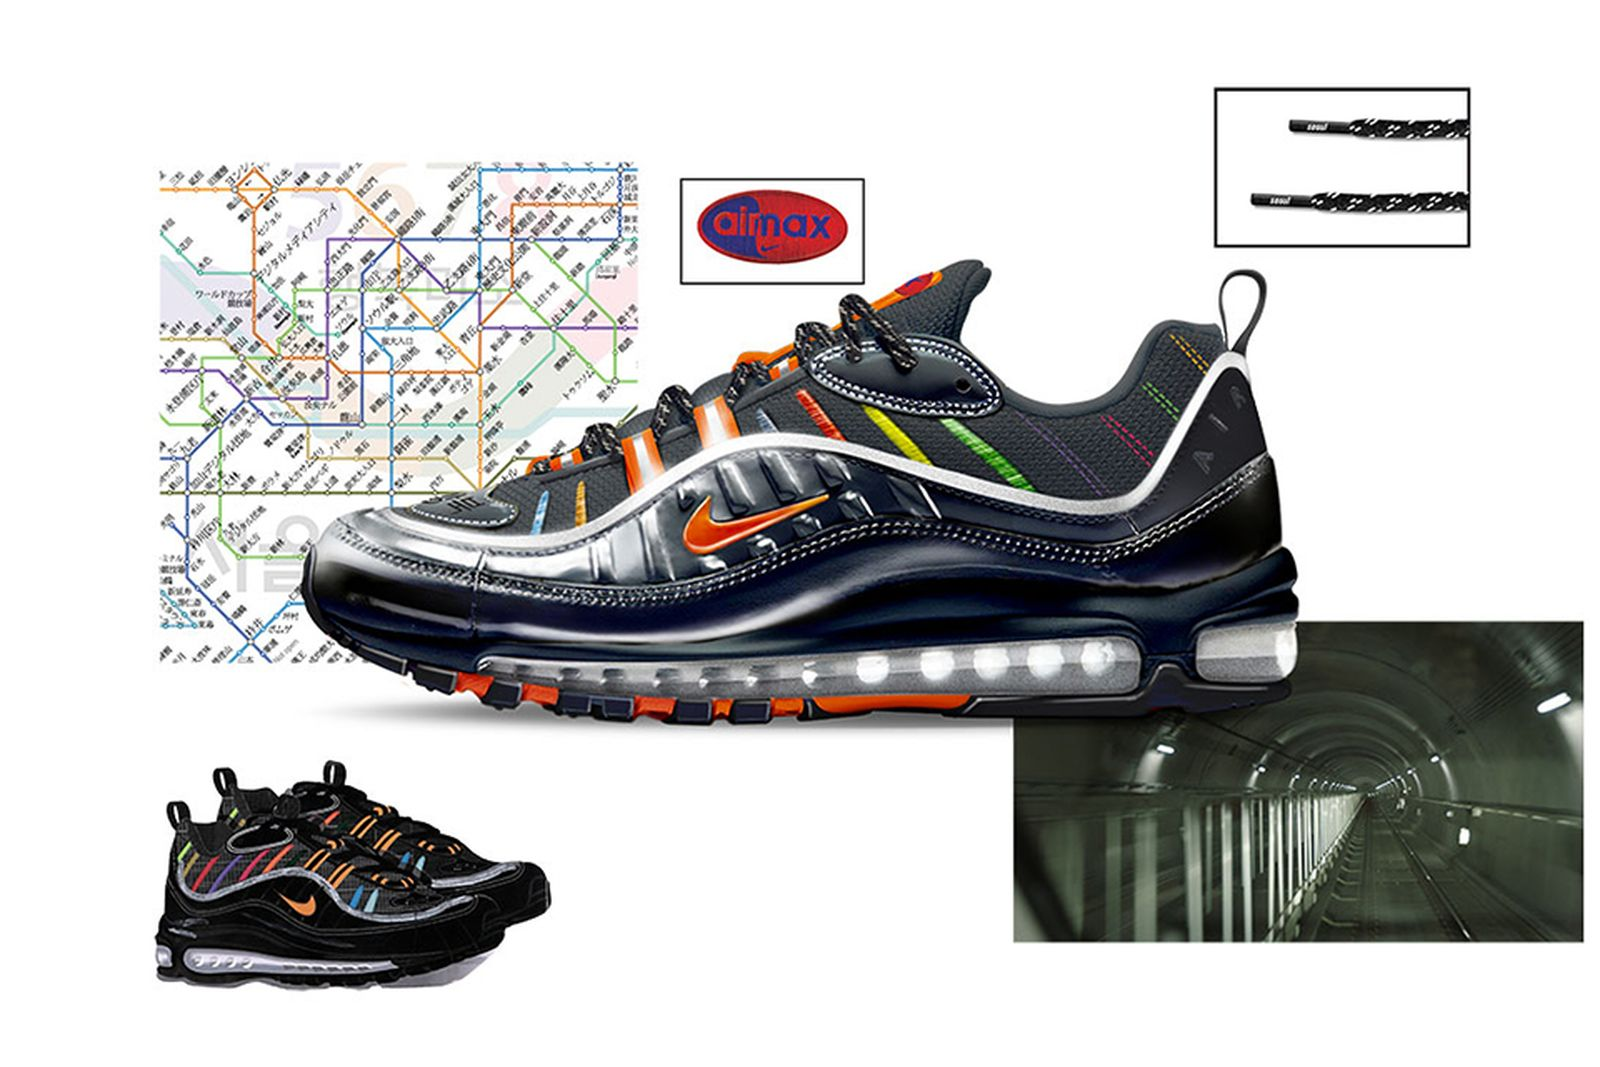 nike-on-air-air-max-design-contest-19